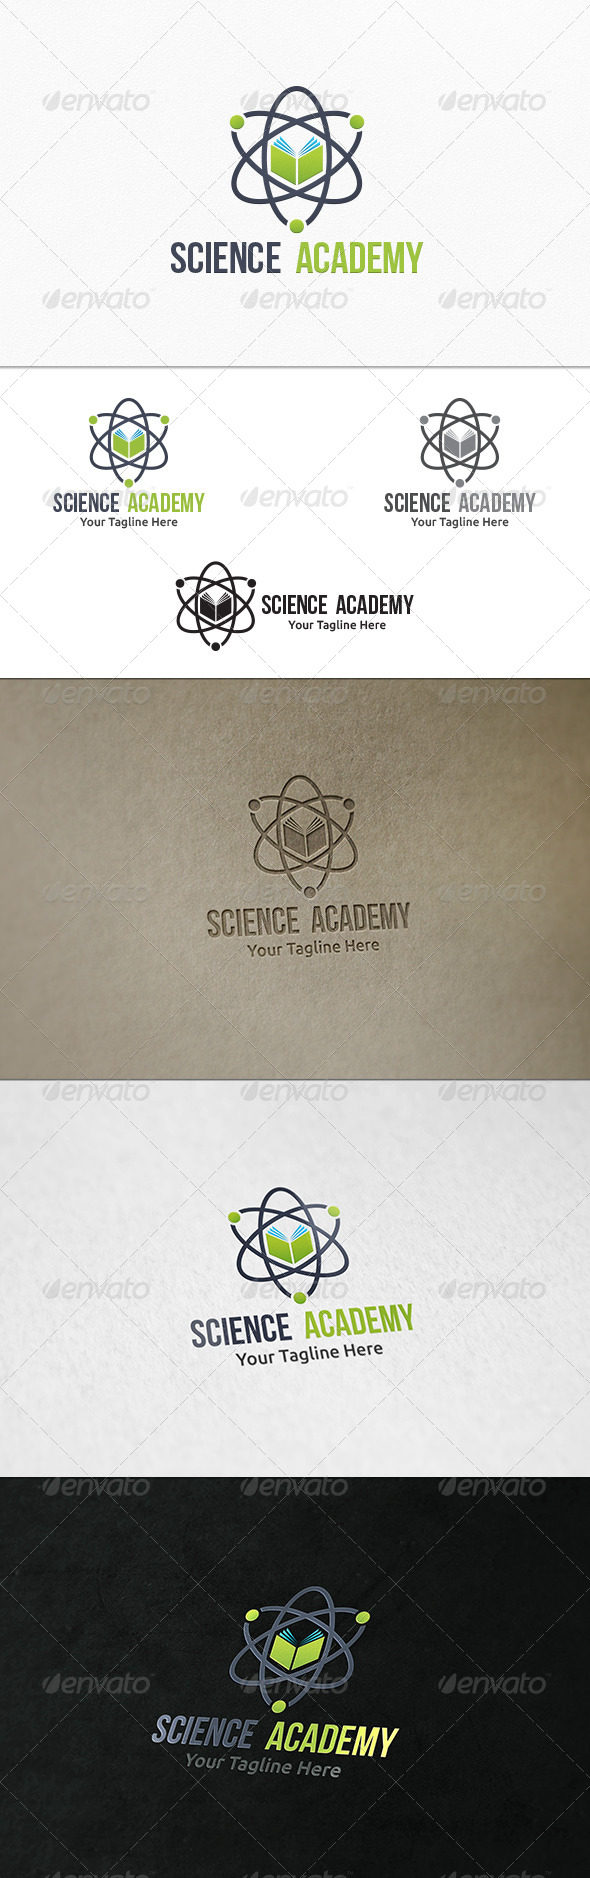 GraphicRiver Science Academy Logo Template 8132762